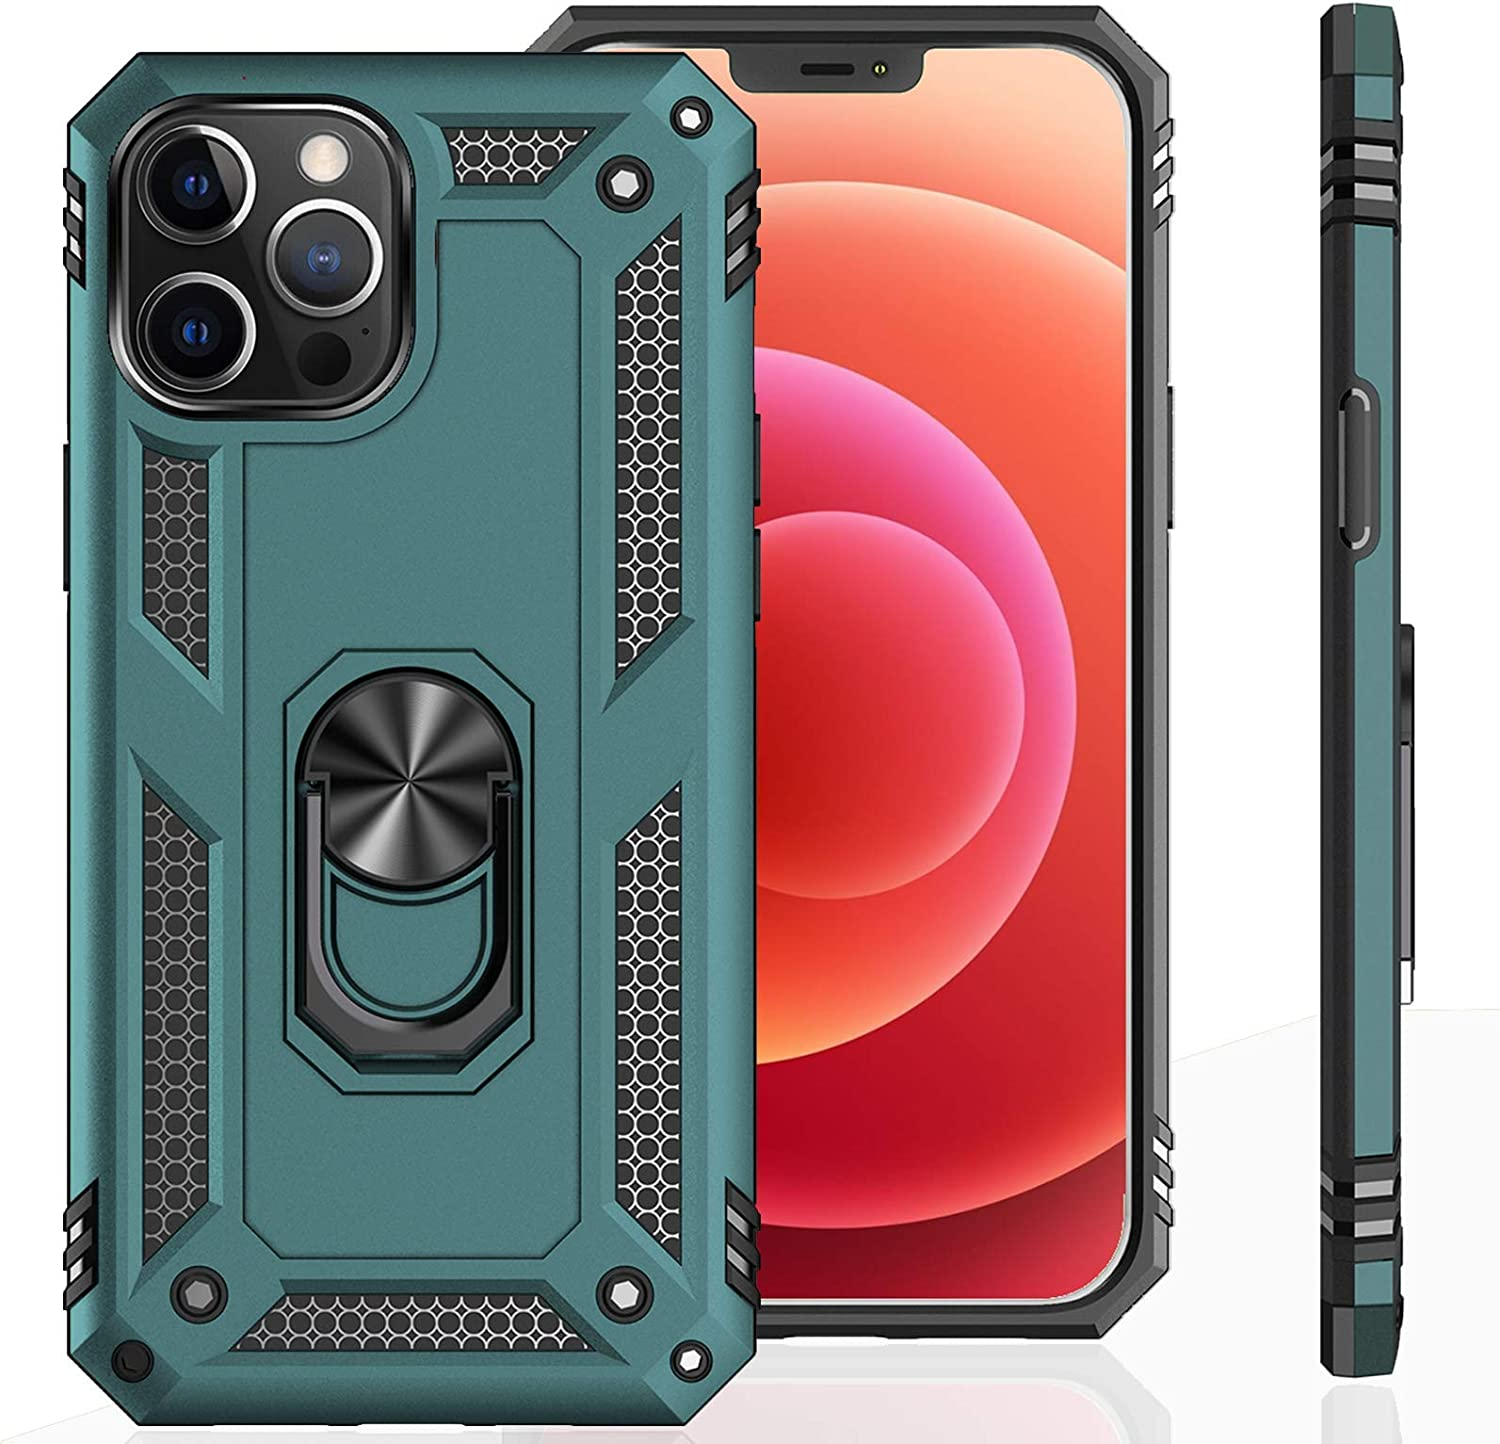 UNKNOK Compatible with iPhone 12 5G Case, iPhone 12 Pro 5G Case [Military Grade ] Drop Tested Metal Rotating Ring Kickstand Magnetic Support Cover for iPhone 12 and iPhone 12 Pro 6.1 Inch (Green)